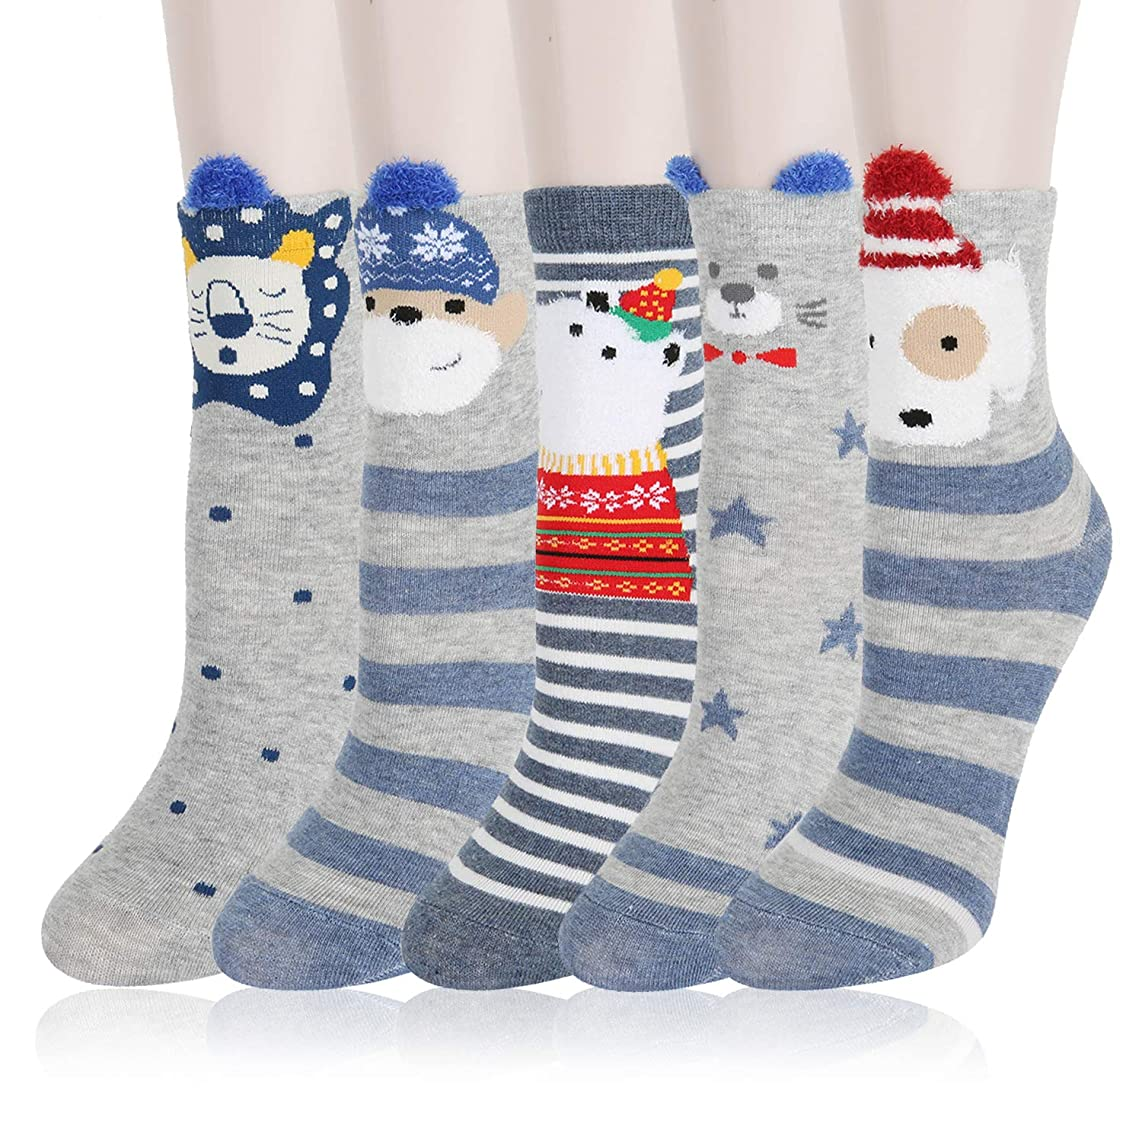 KACOLOR Cotton Cute Funny Animal Crew Ankle Socks, 5 Pairs, Women and Men, Breathable, Soft, Warm